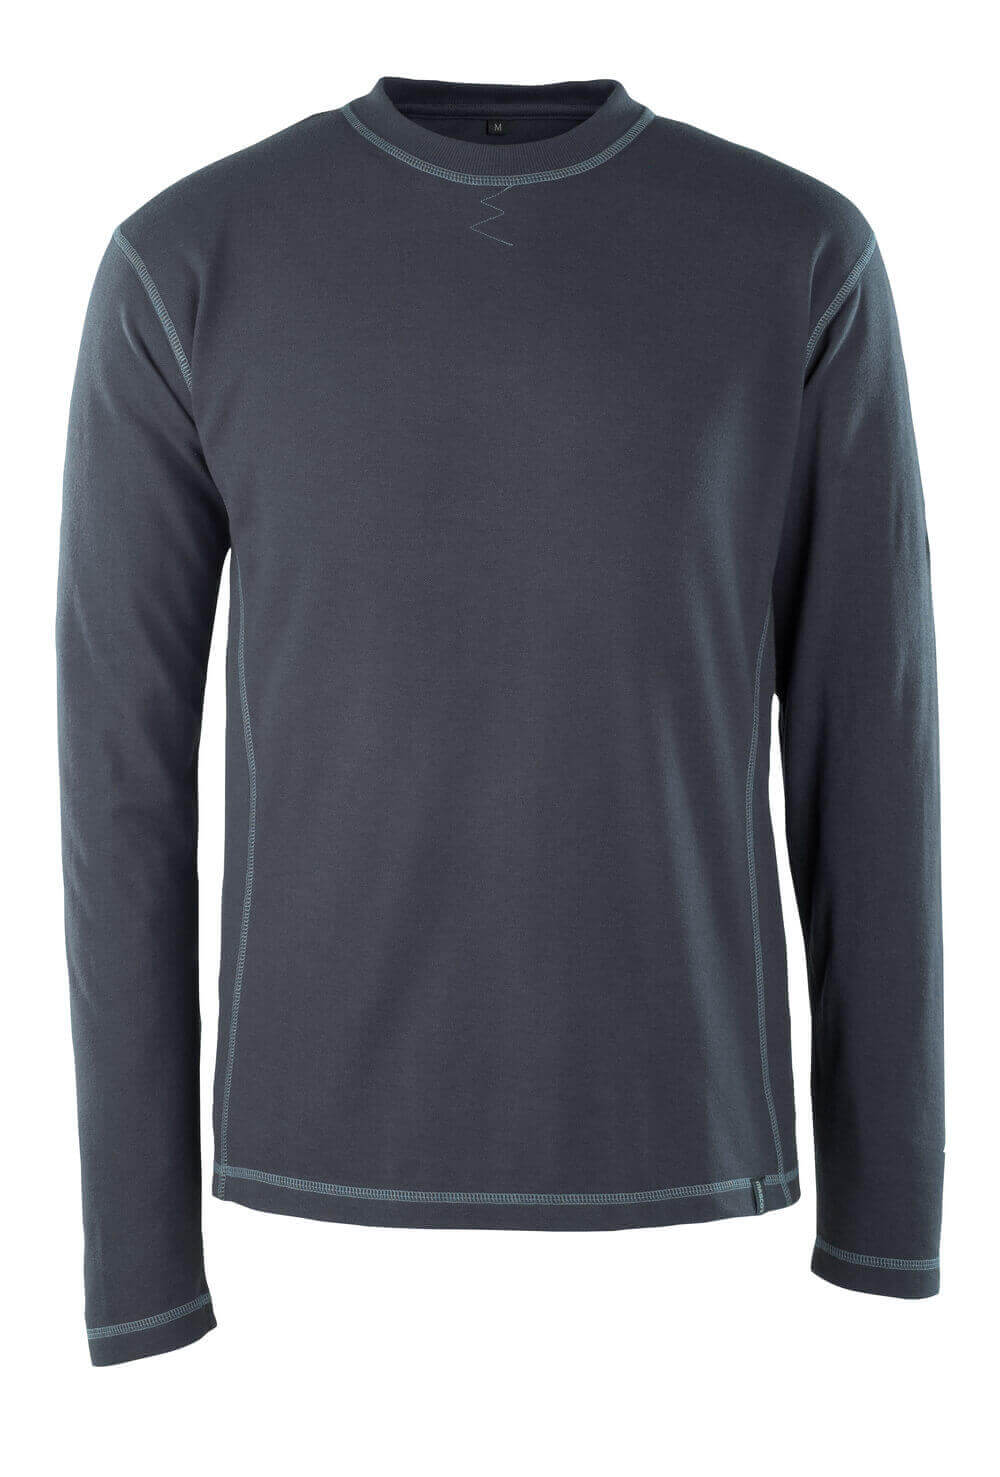 50119-927-010 T-shirt, long-sleeved - dark navy